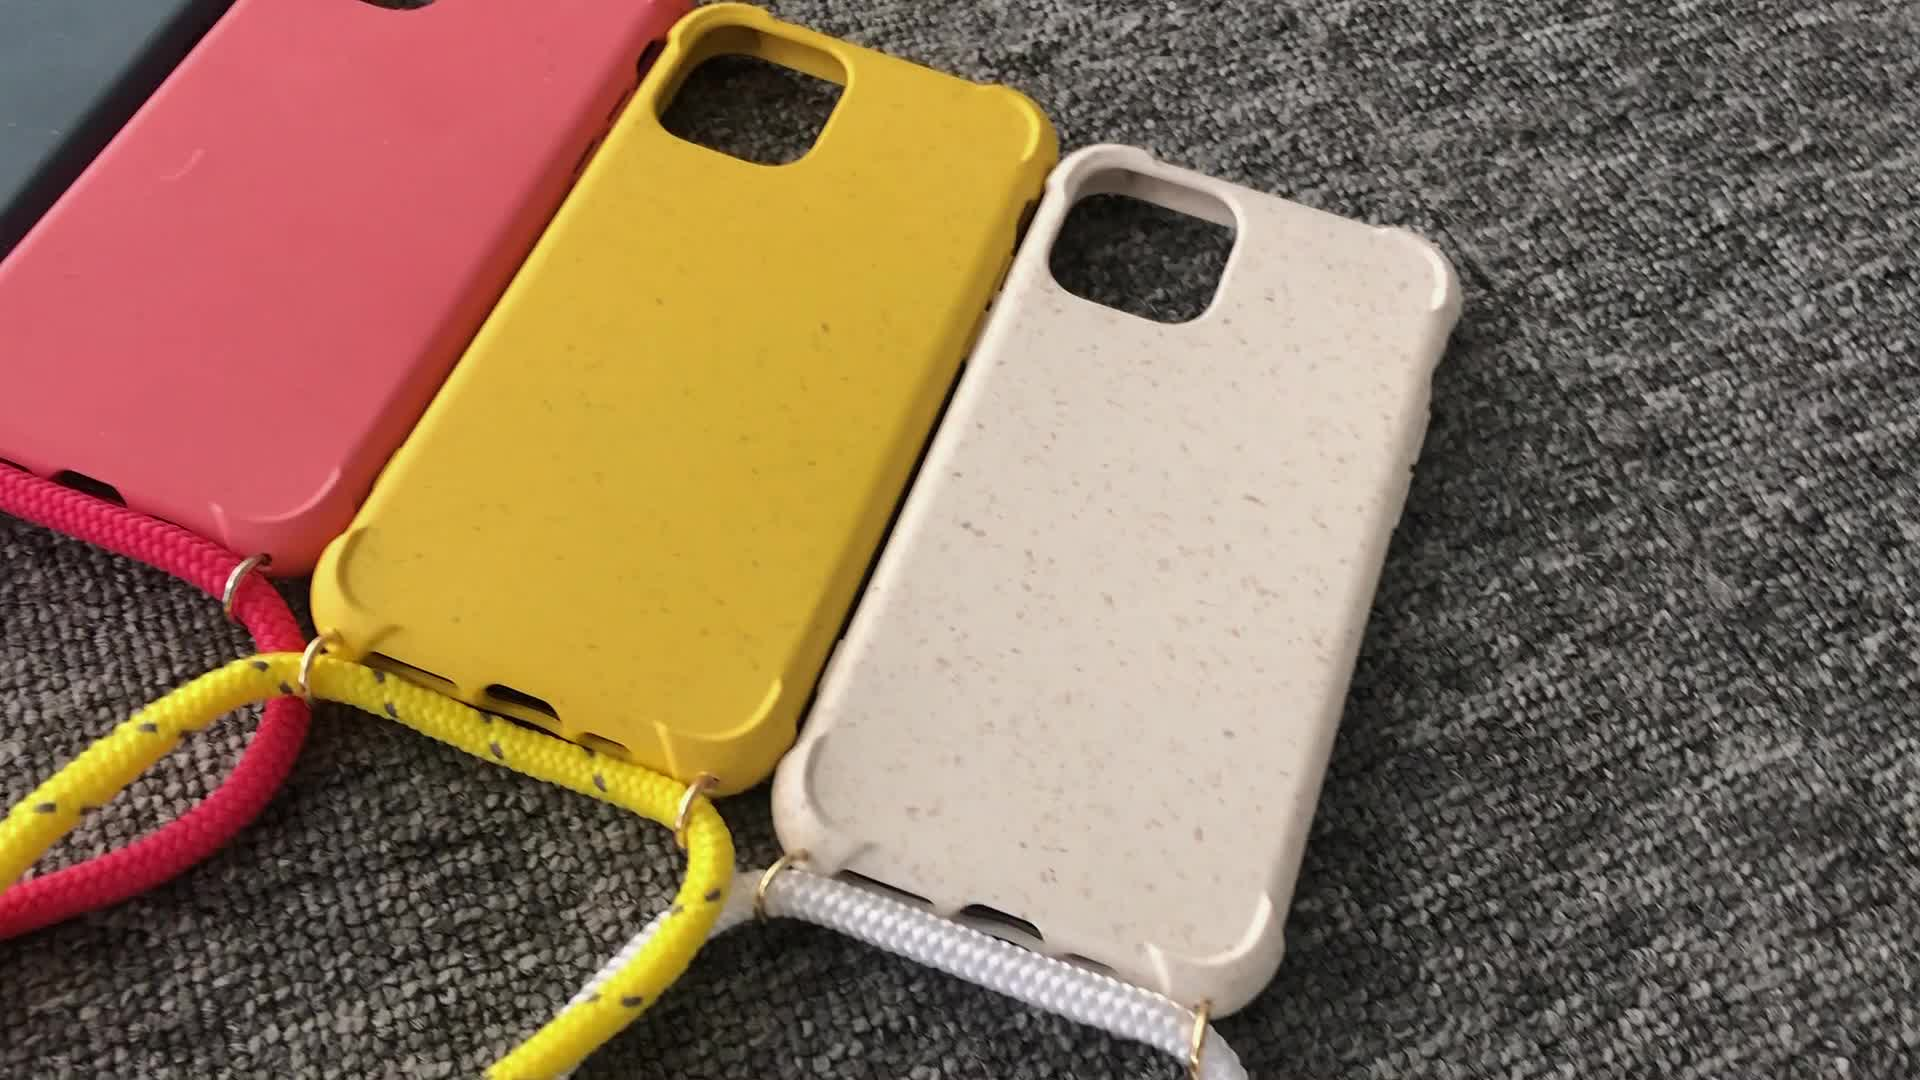 2020 hot selling products recycled plastic phone case For iPhone 7/8